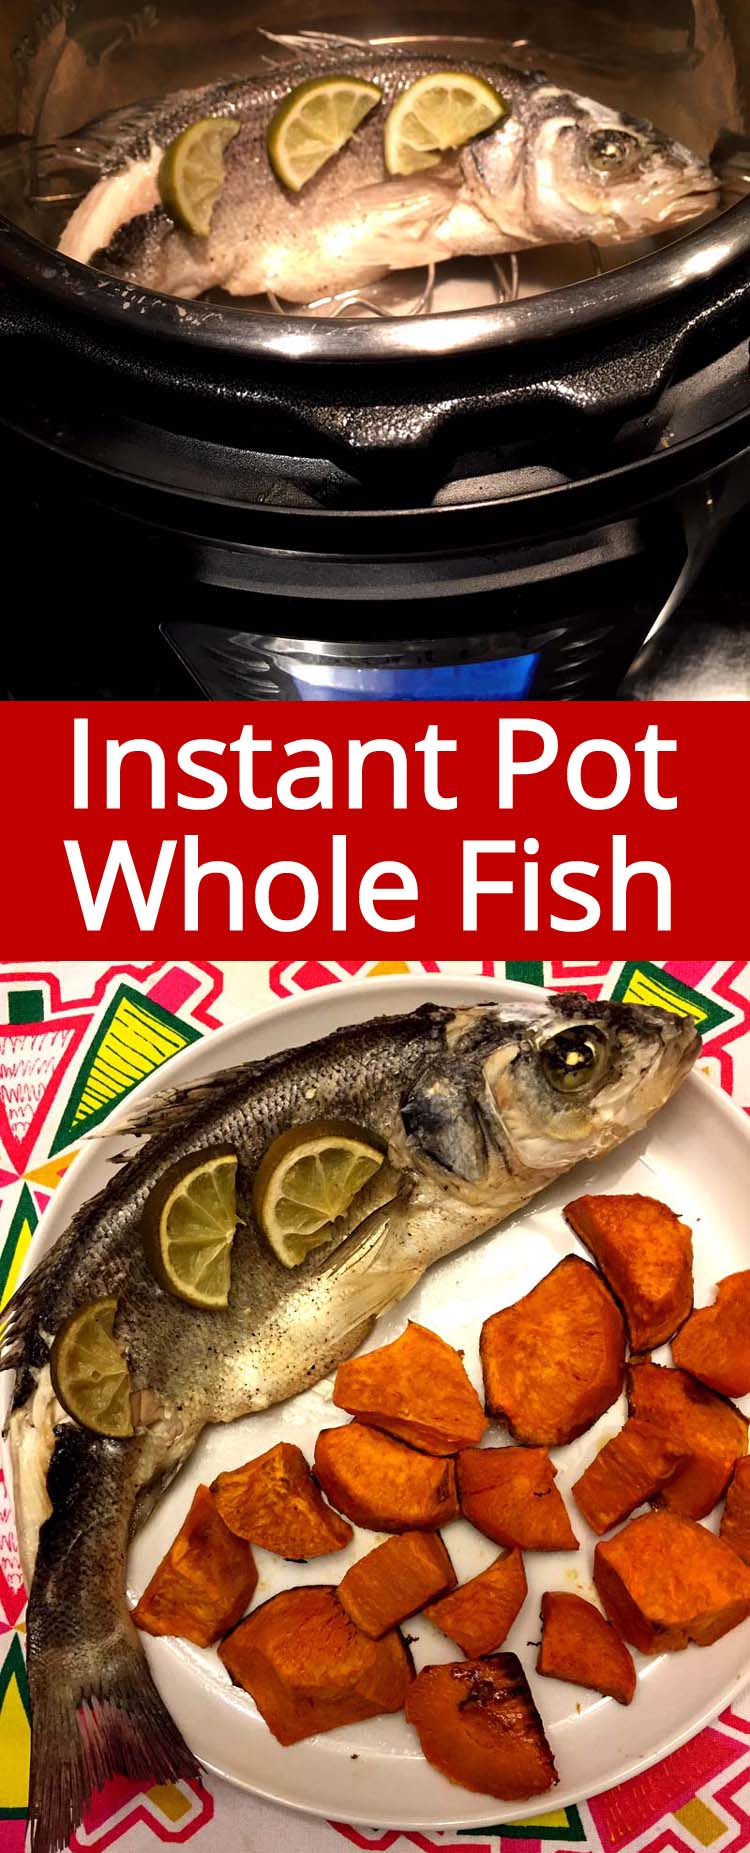 This Instant Pot whole fish is amazing! Cooking the whole fish has never been easier! Just throw the whole fish in the Instant Pot and press the button!